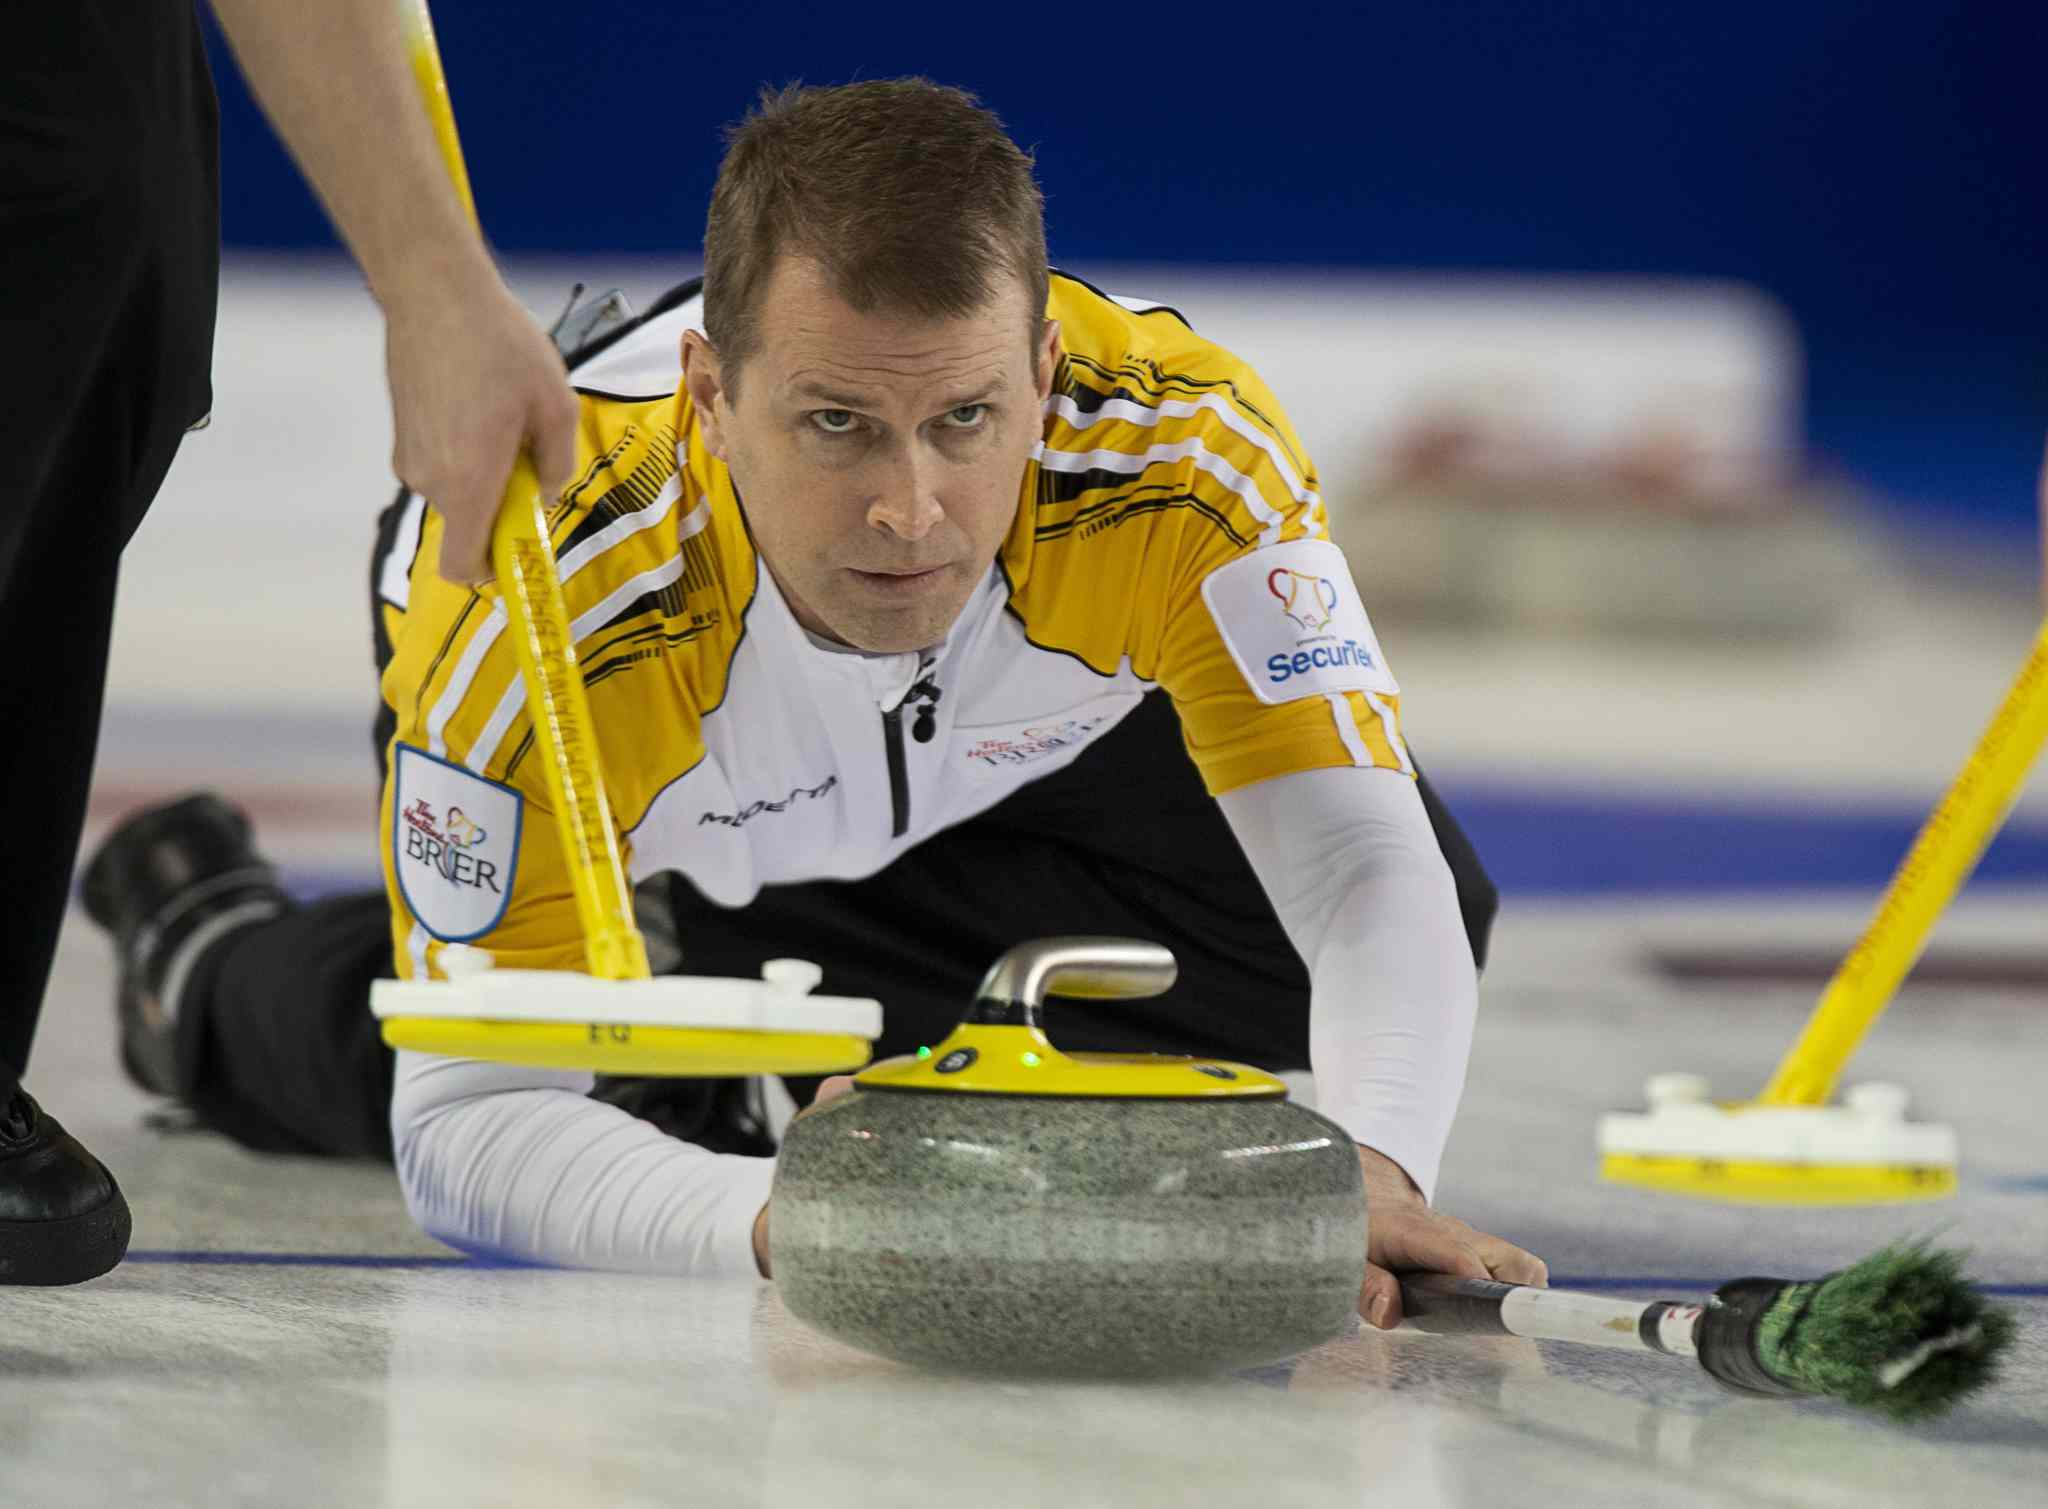 Jeff Stoughton releases a rock against Northwest Territories/Yukon at the Tim Hortons Brier in Kamloops on Sunday.